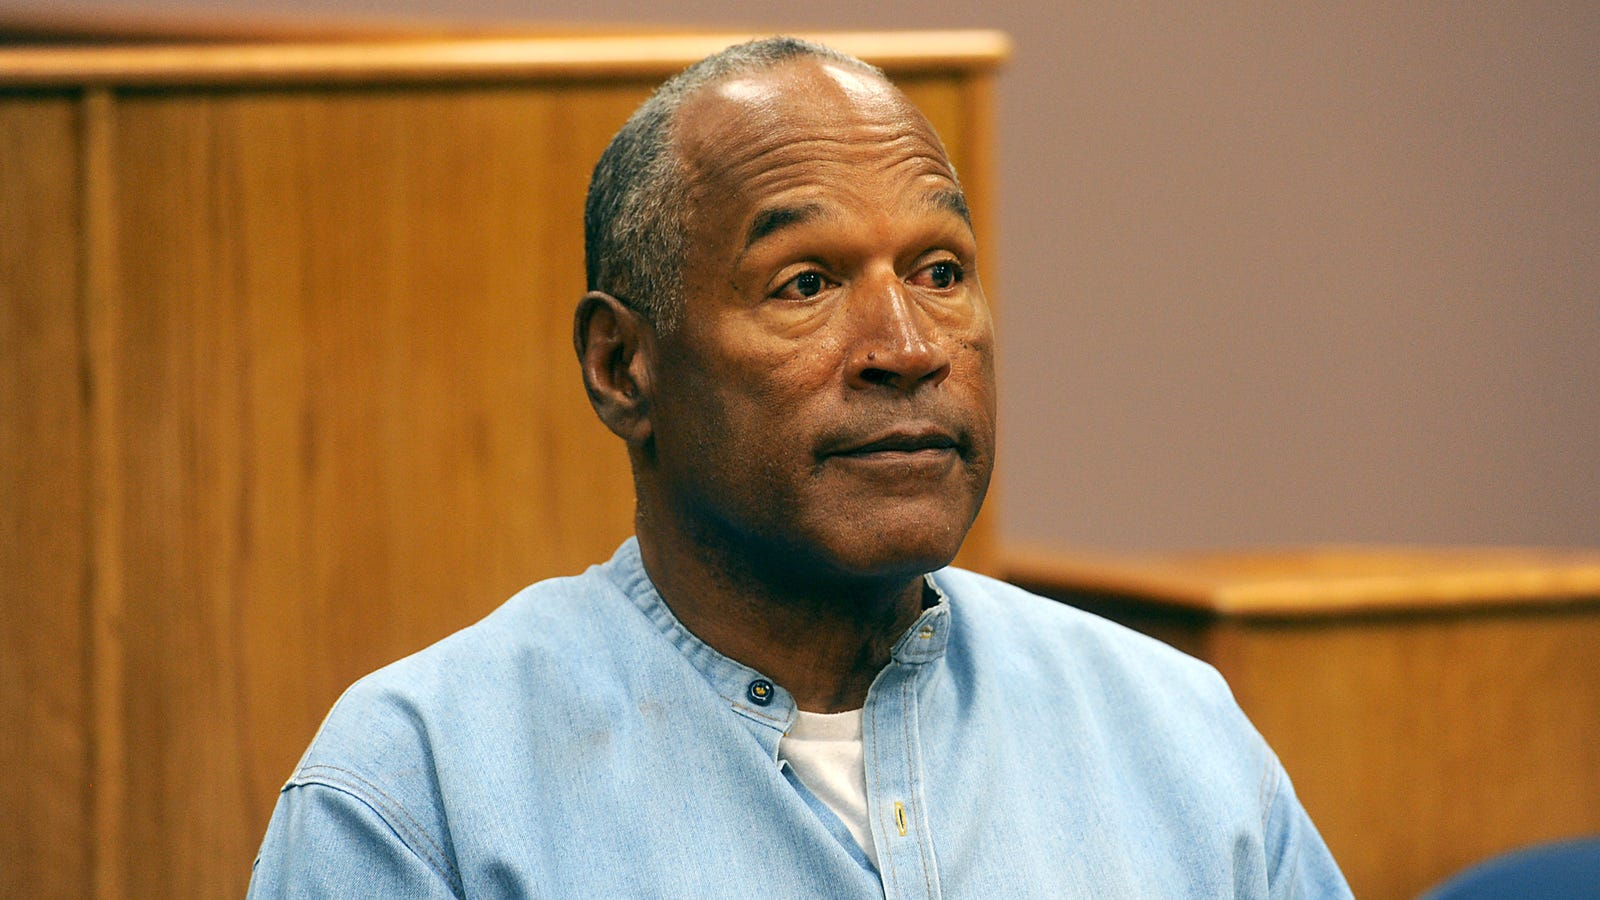 O.J. Simpson was offered a cameo in an all-time great Simpsons episode